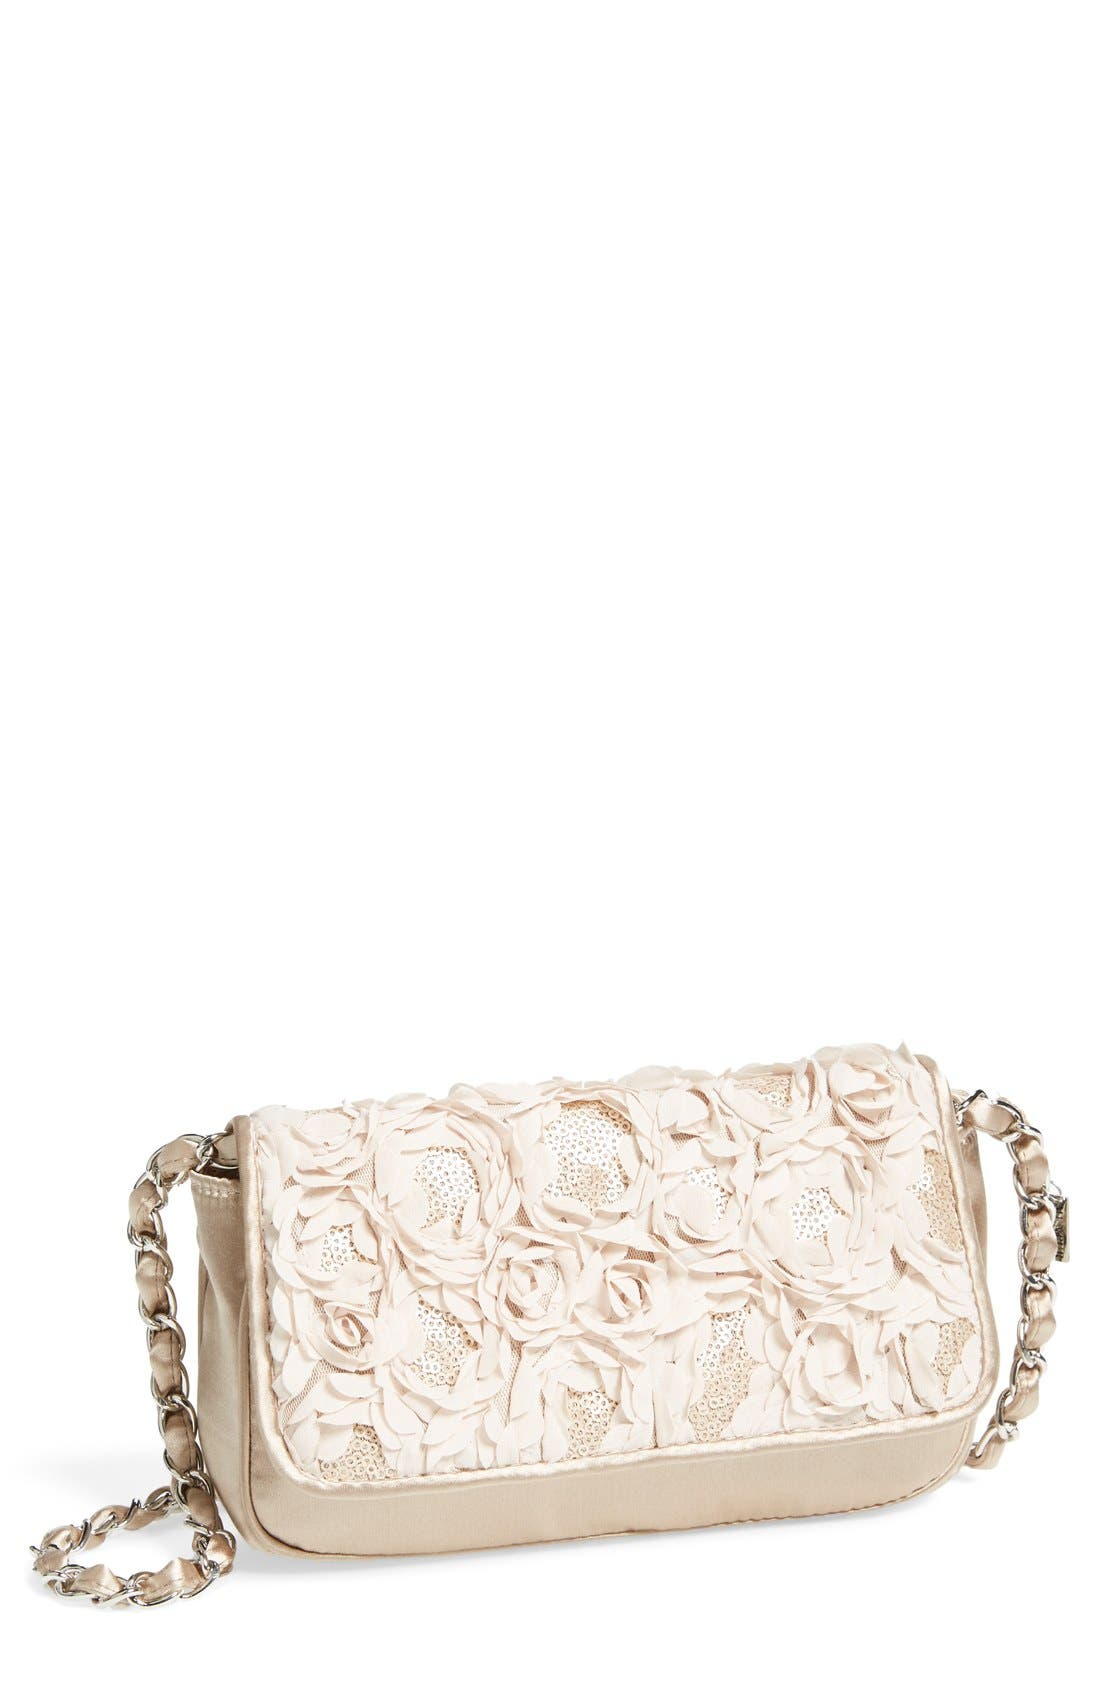 'Lassus' Satin Clutch,                         Main,                         color, Stone